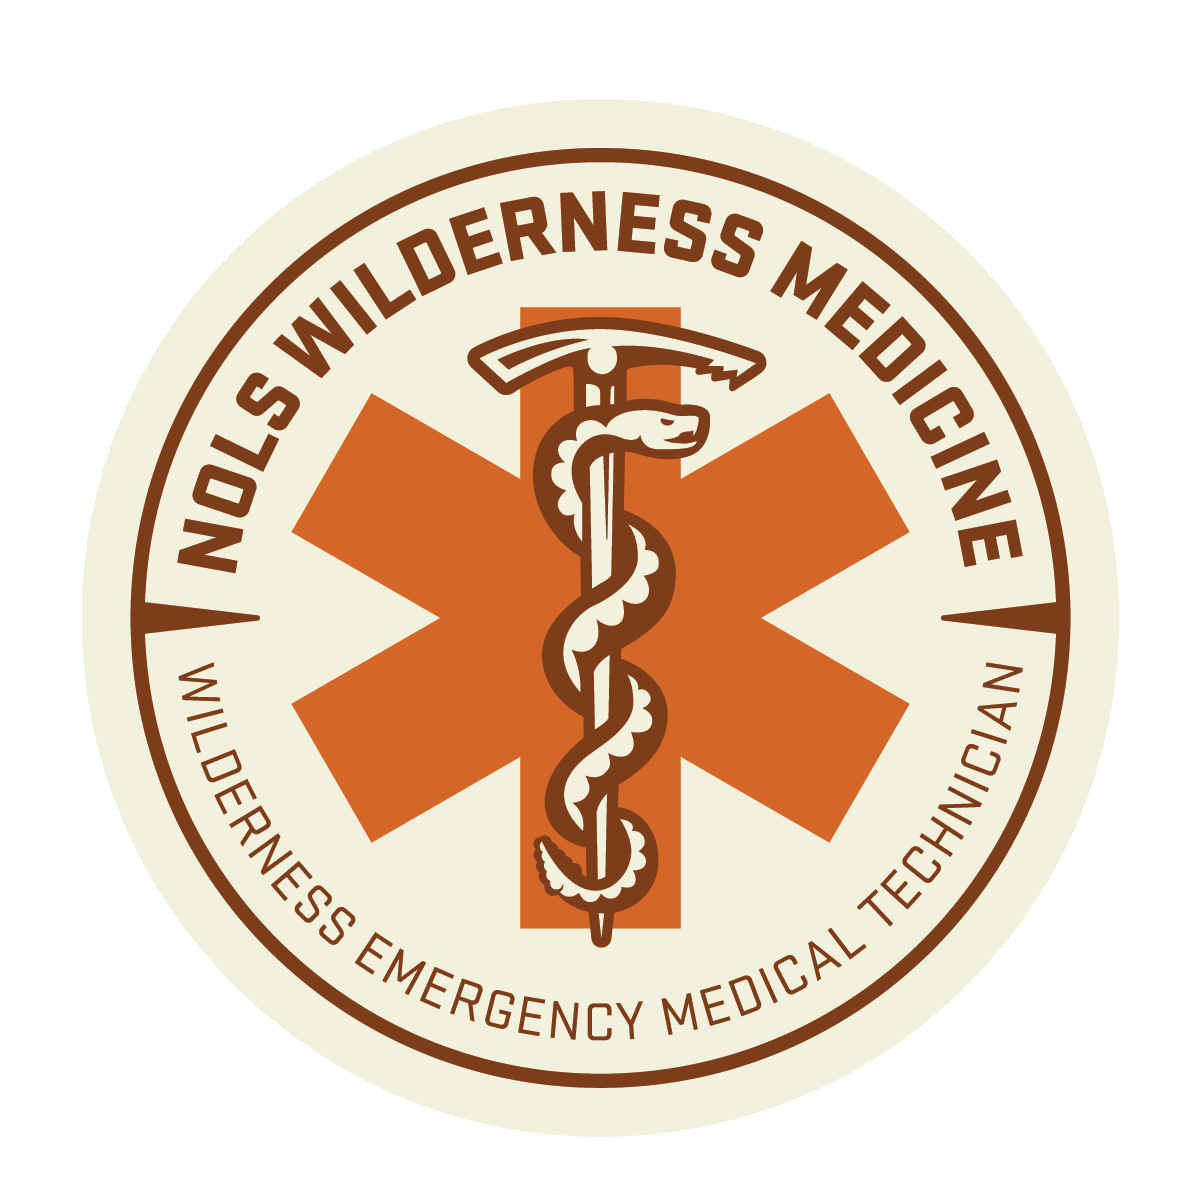 Wilderness EMT Badge from NOLS Wilderness Medicine